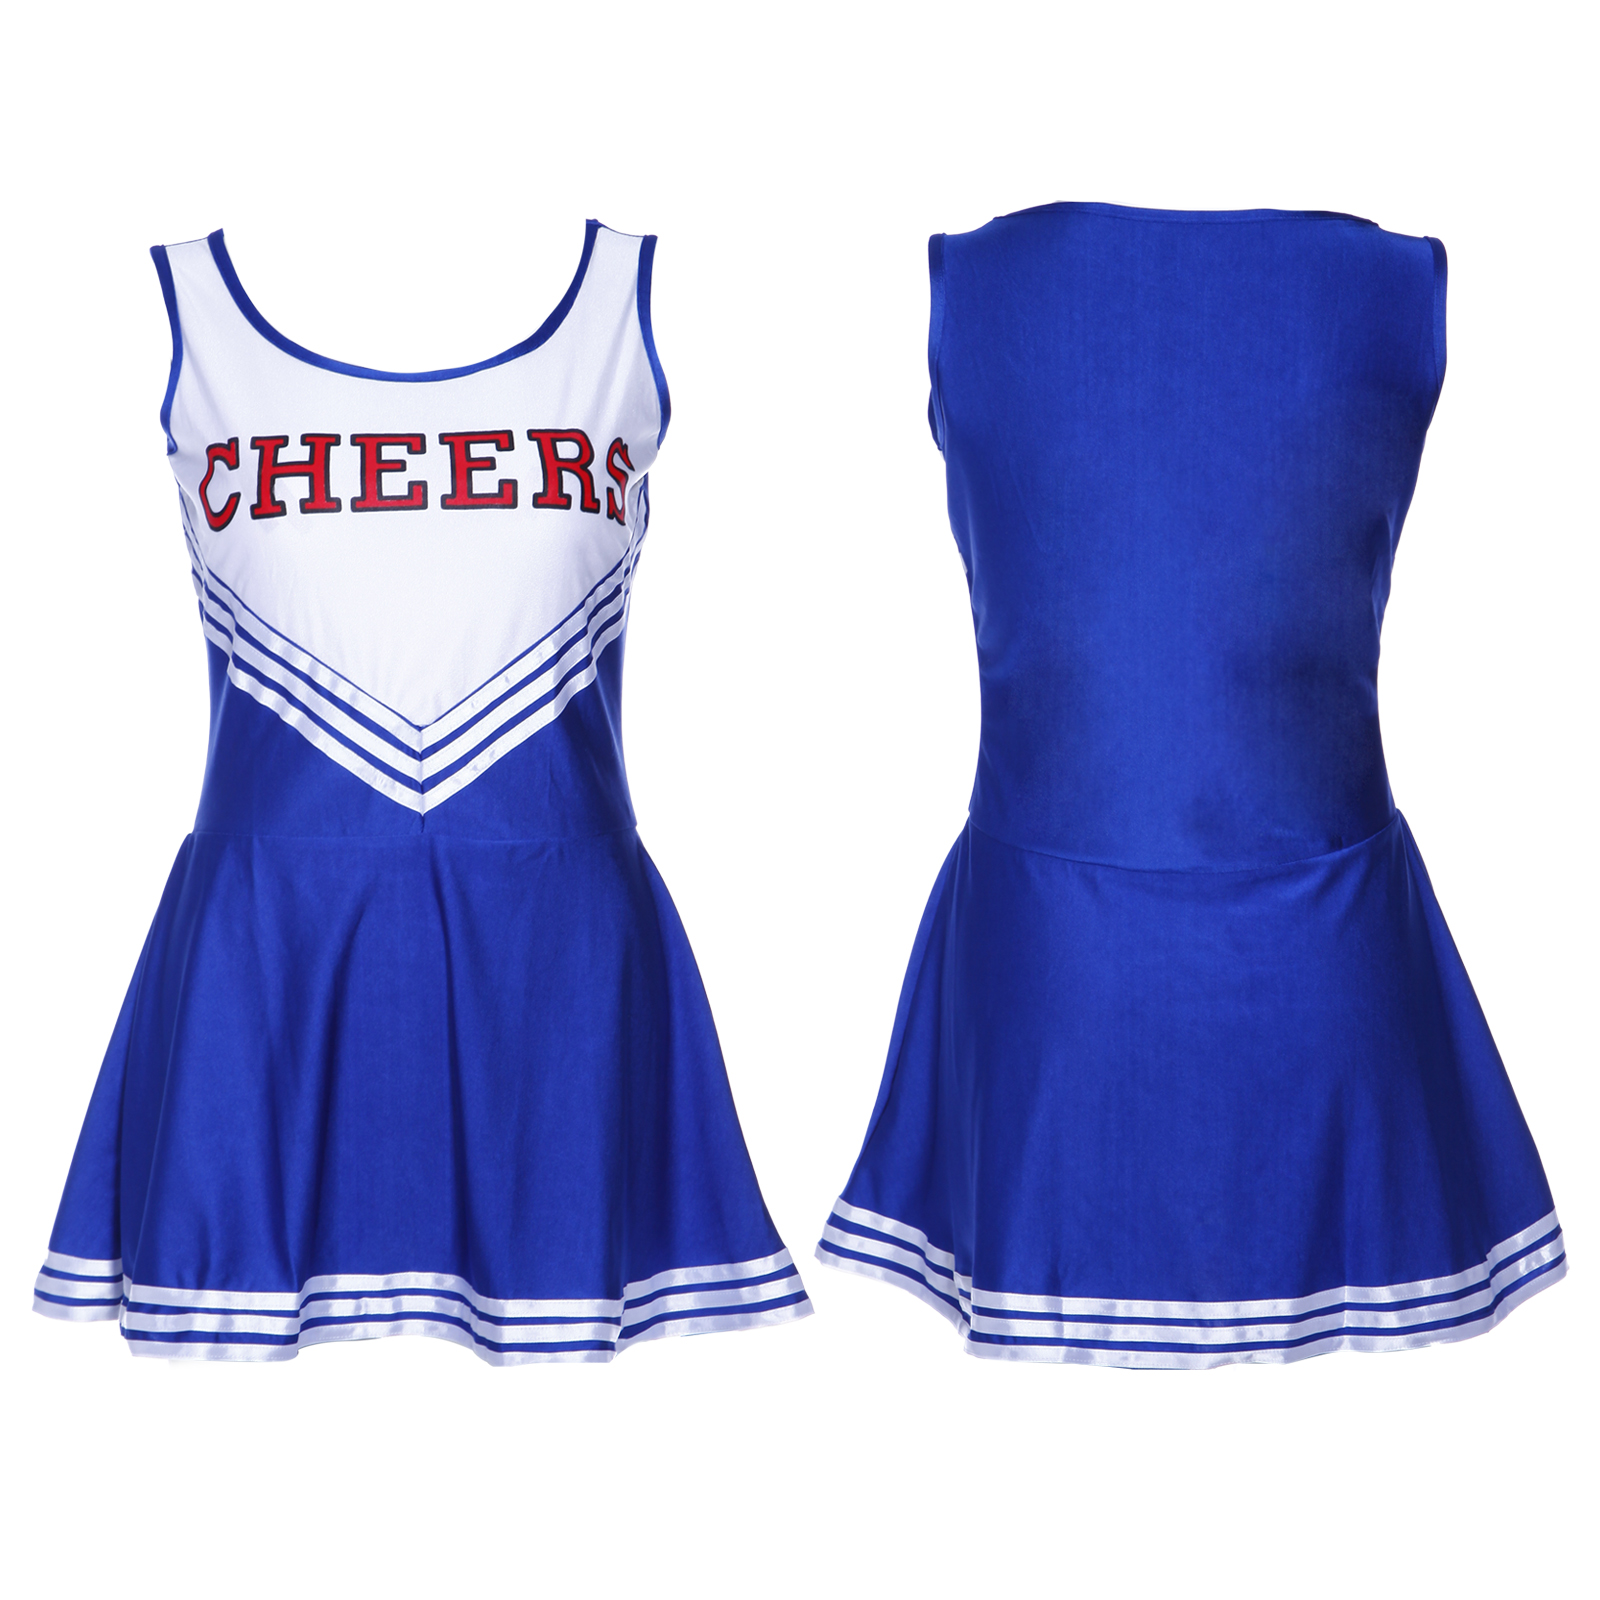 HIGH SCHOOL SPORTS TEAM CHEER GIRL UNIFORM cheerleader COSTUME OUTFIT W/POM POMS | eBay